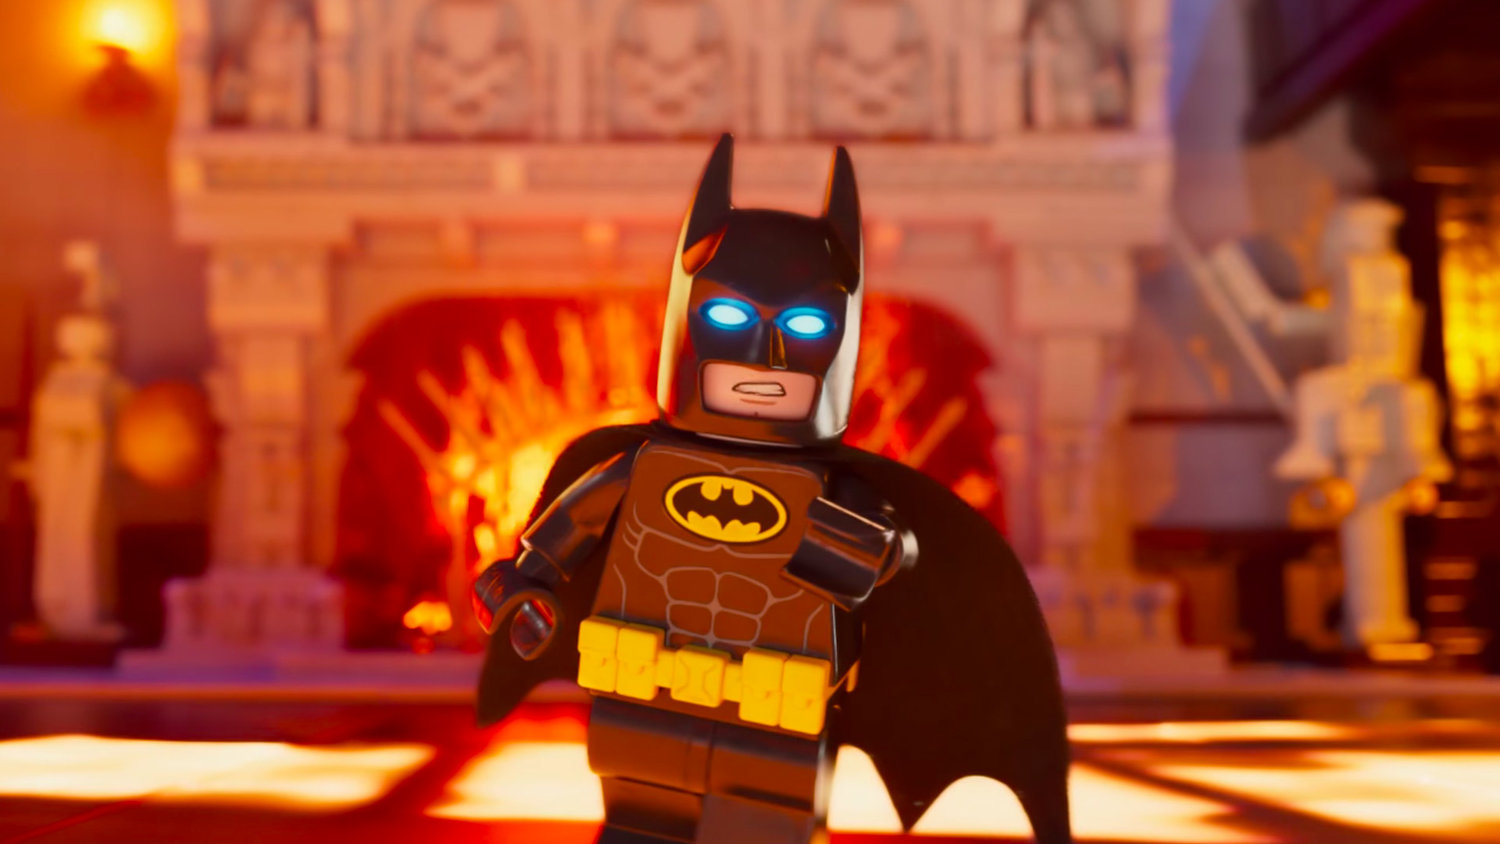 Batman Gives You a Tour of THE LEGO BATMAN MOVIE's Wayne Manor in